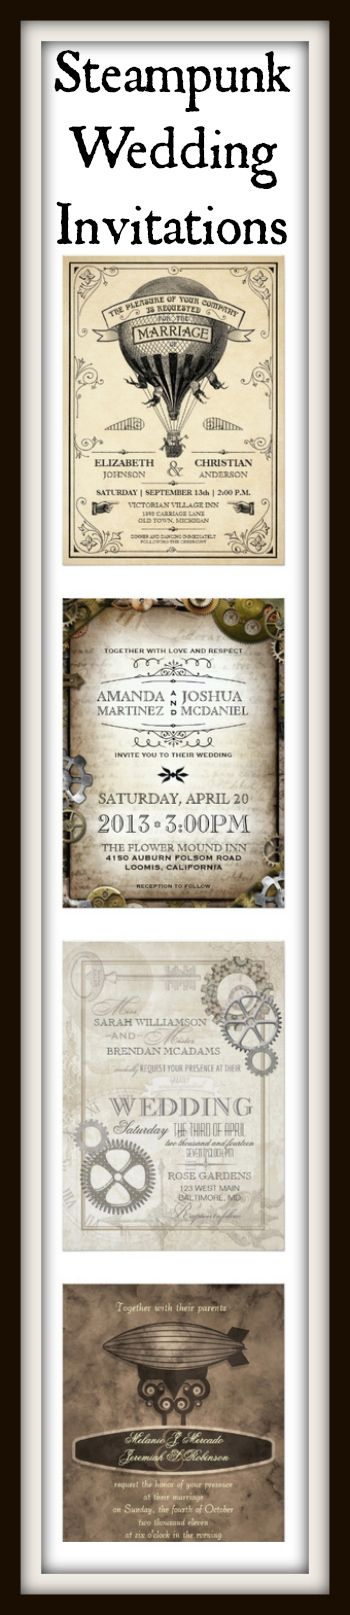 Steampunk Wedding Invitations for a Victorian Steampunk